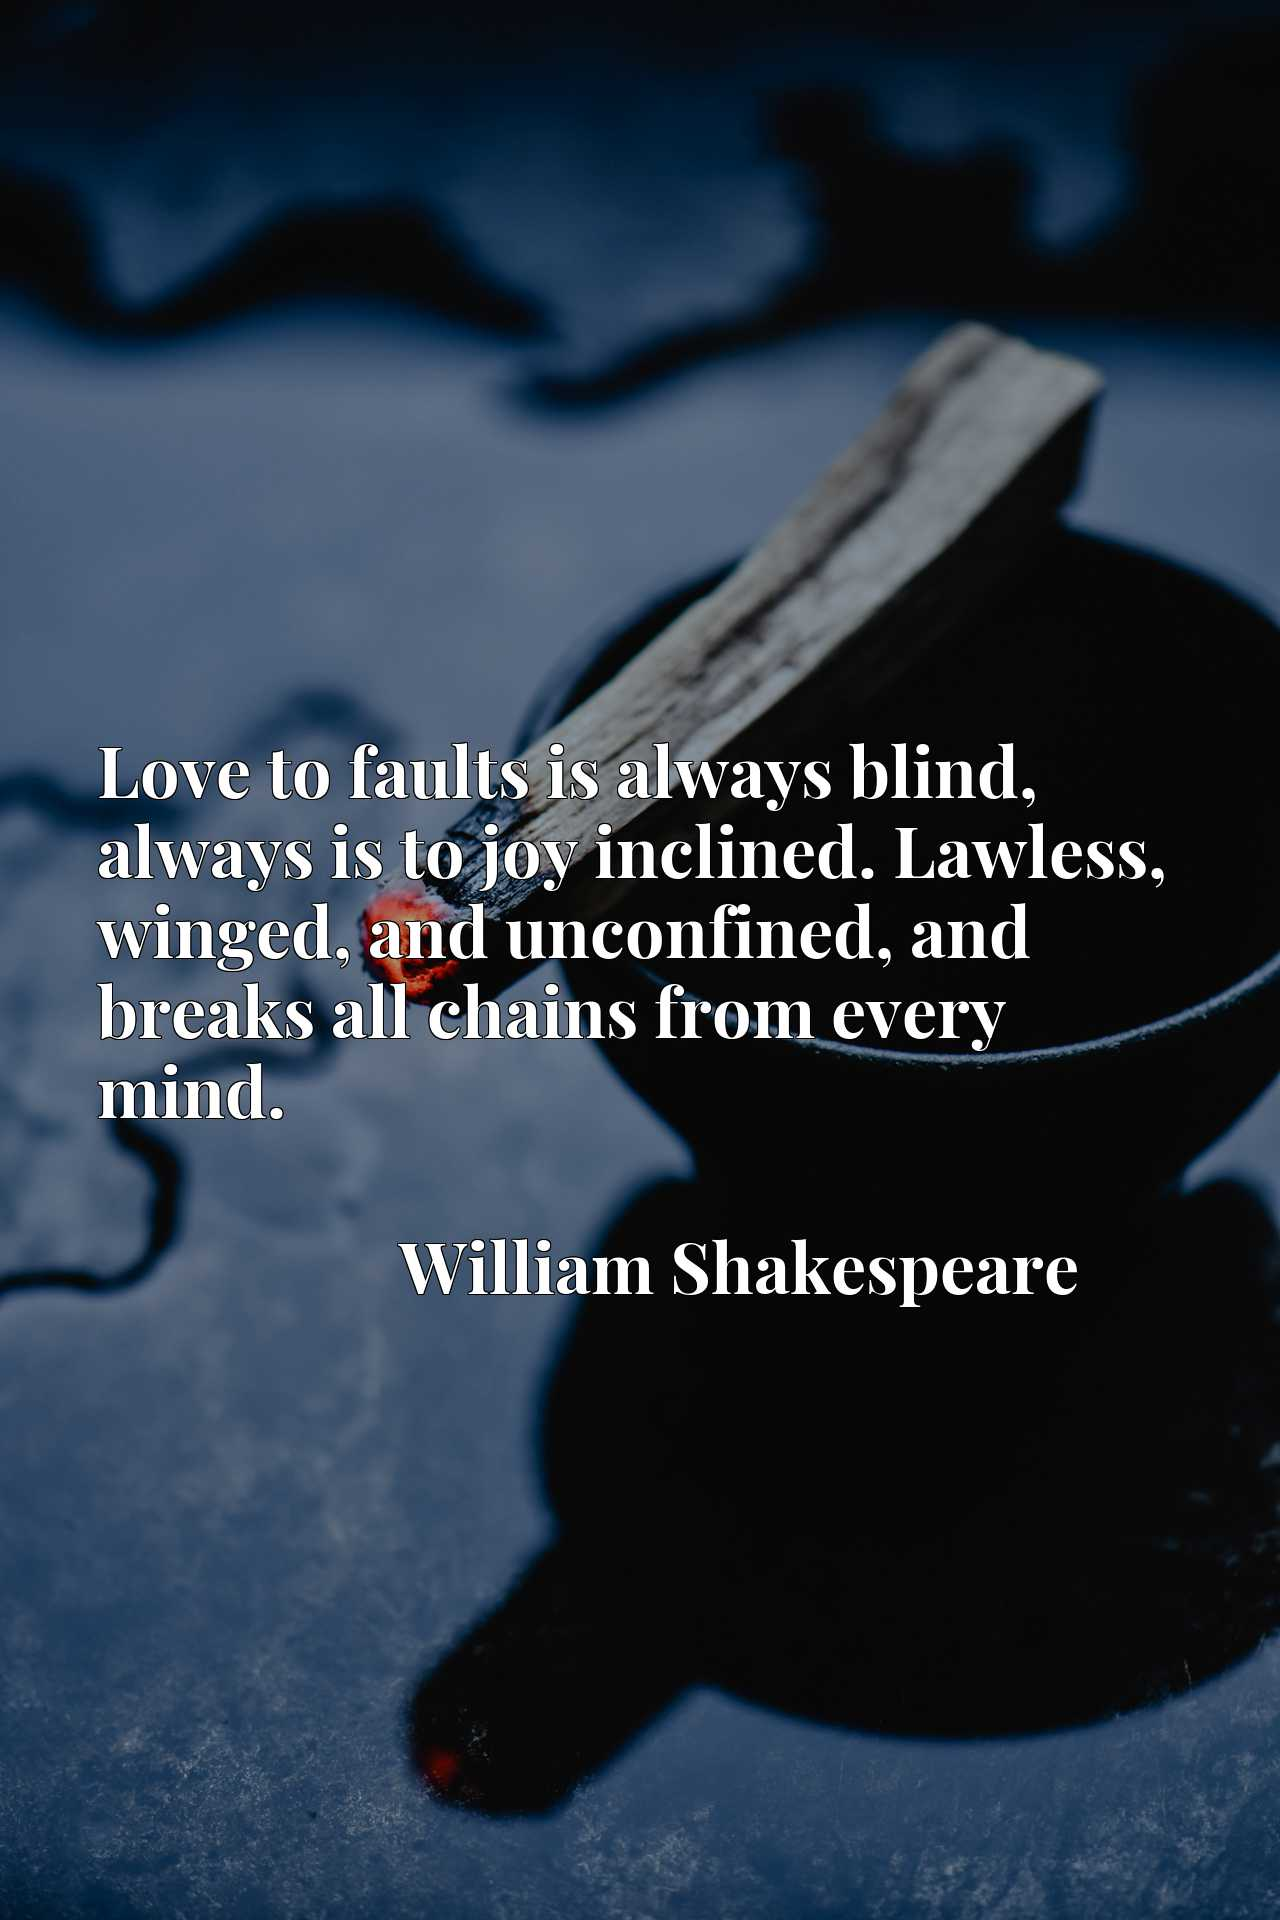 Love to faults is always blind, always is to joy inclined. Lawless, winged, and unconfined, and breaks all chains from every mind.